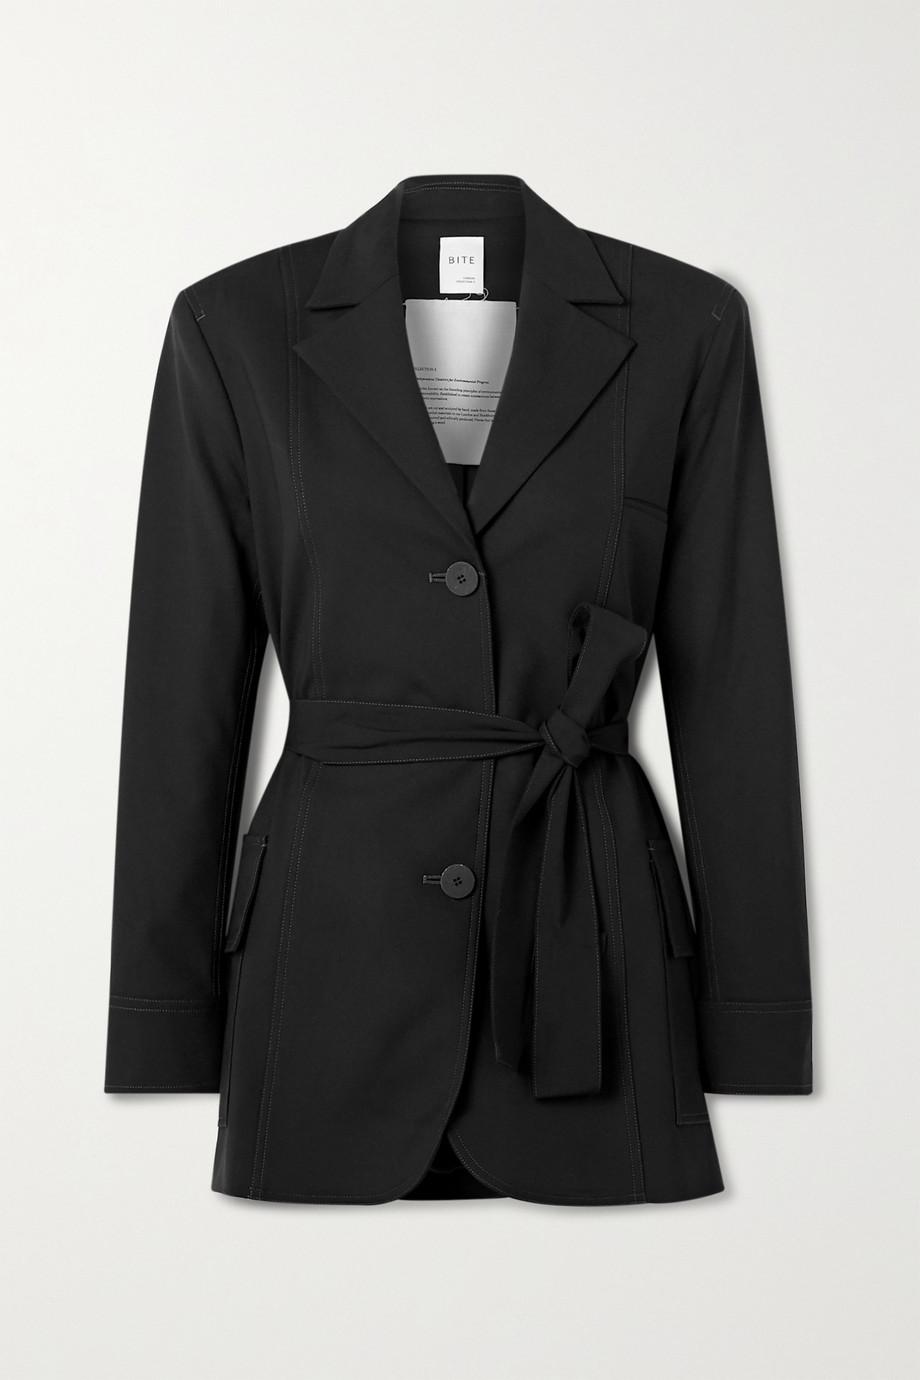 BITE Studios + NET SUSTAIN belted organic wool-blend jacket